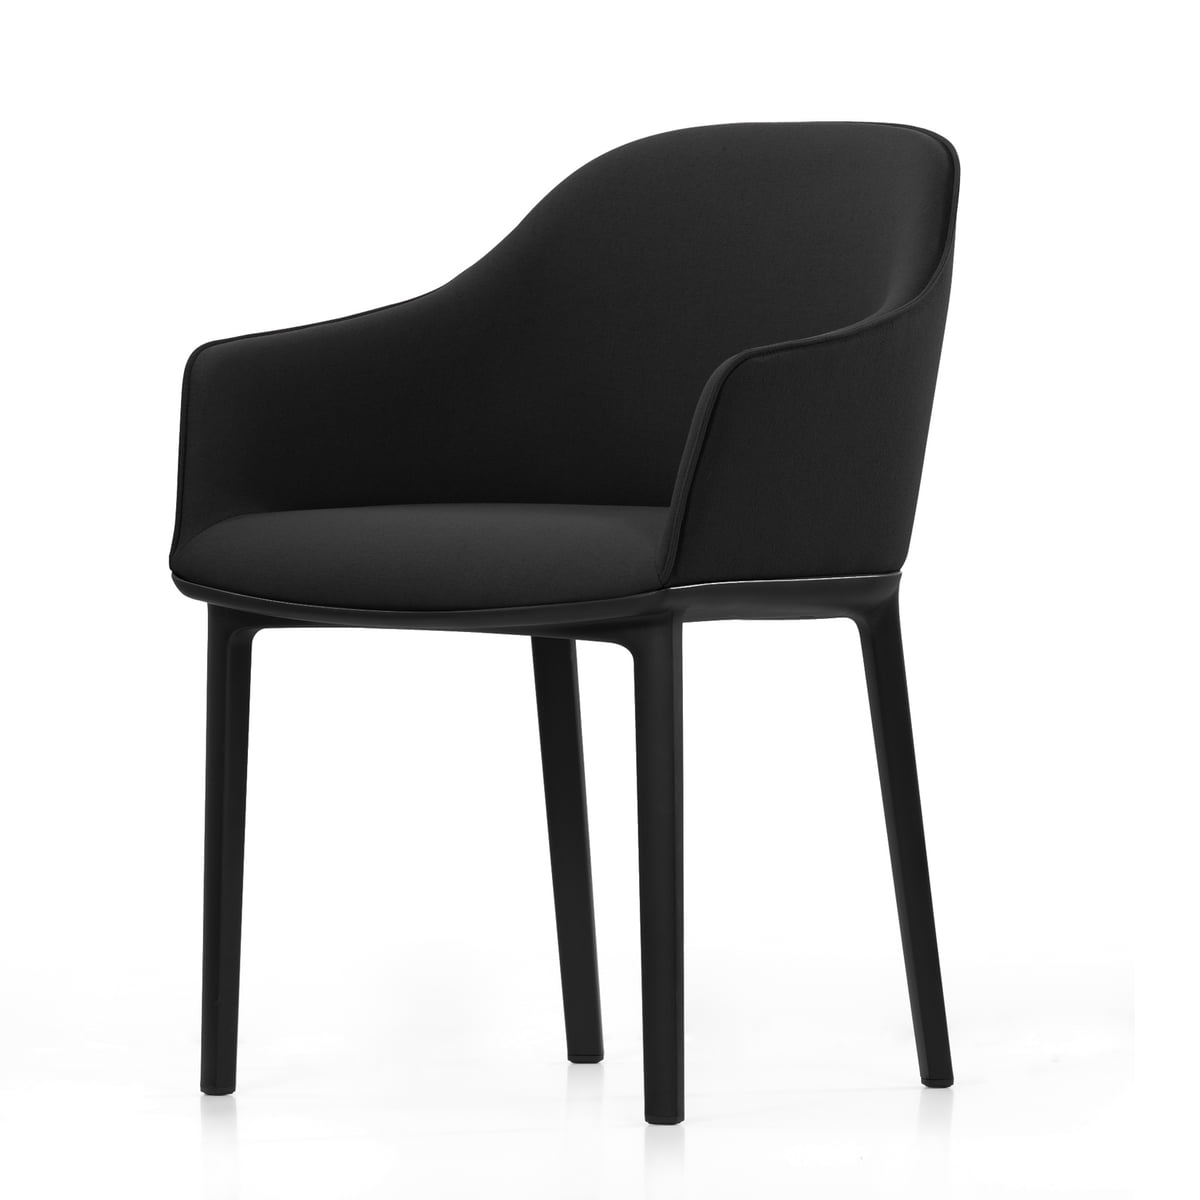 softshell chair von vitra connox. Black Bedroom Furniture Sets. Home Design Ideas